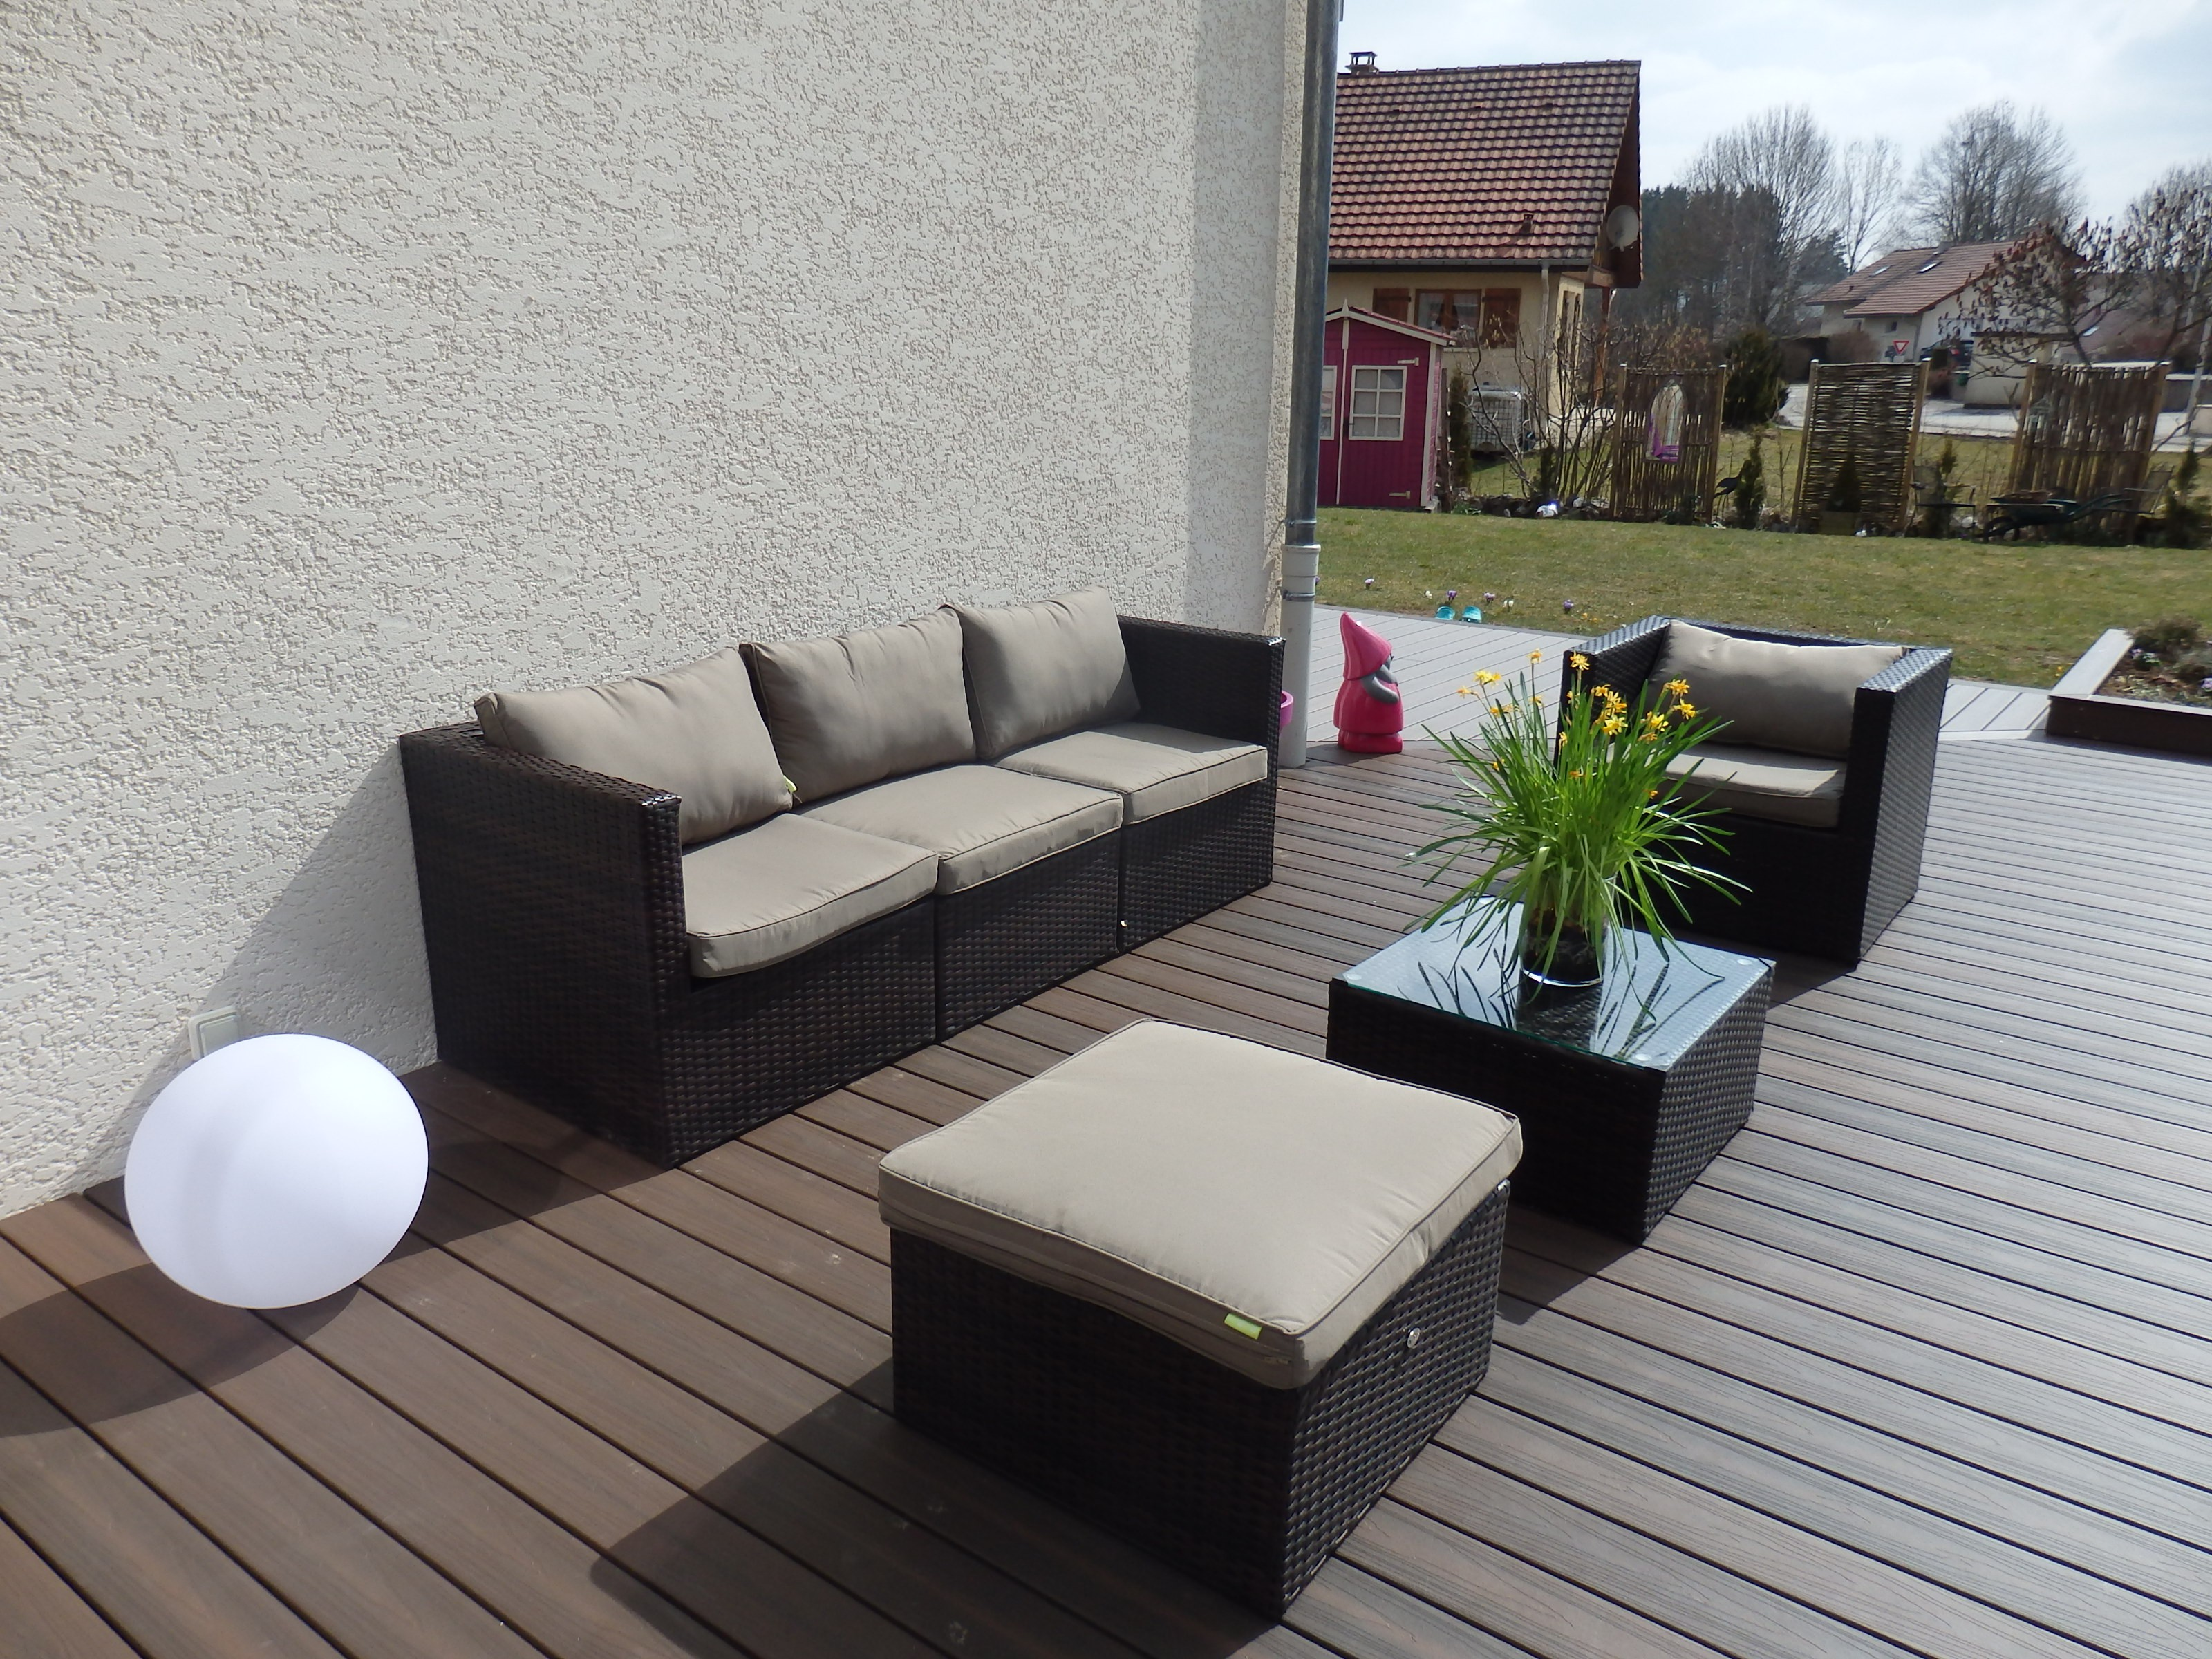 Salon de jardin 5 places en r sine royal sofa id e de for Salon 5 places